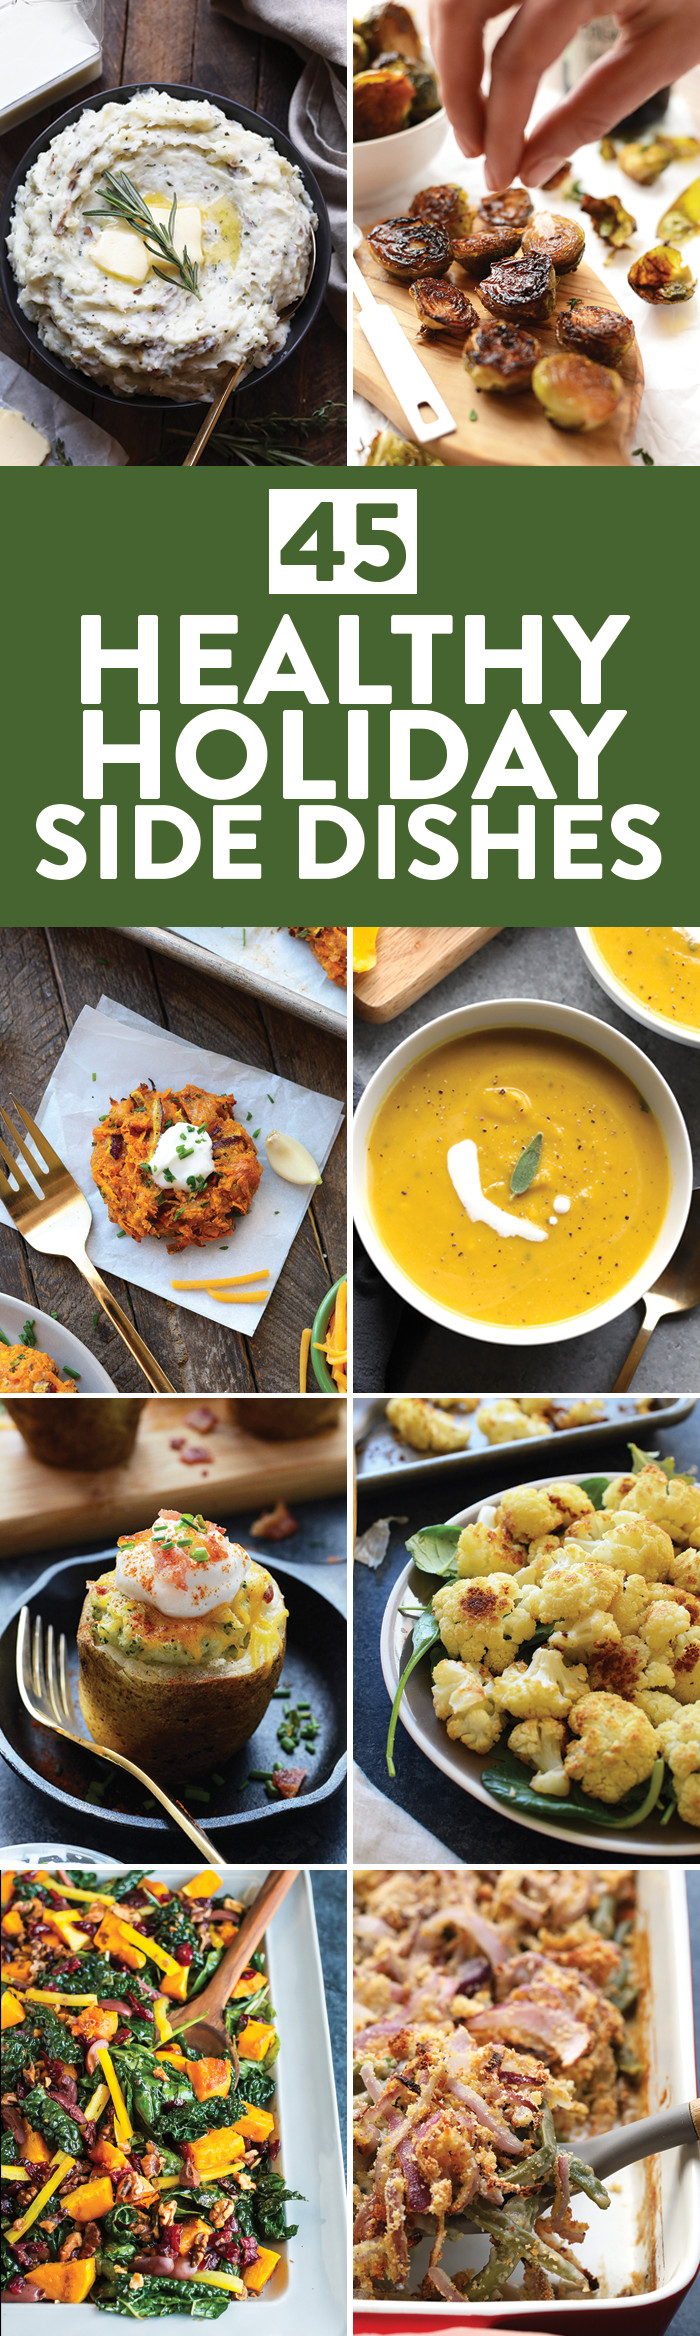 Healthy Christmas Side Dishes  45 Healthy Holiday Side Dishes for Thanksgiving Christmas